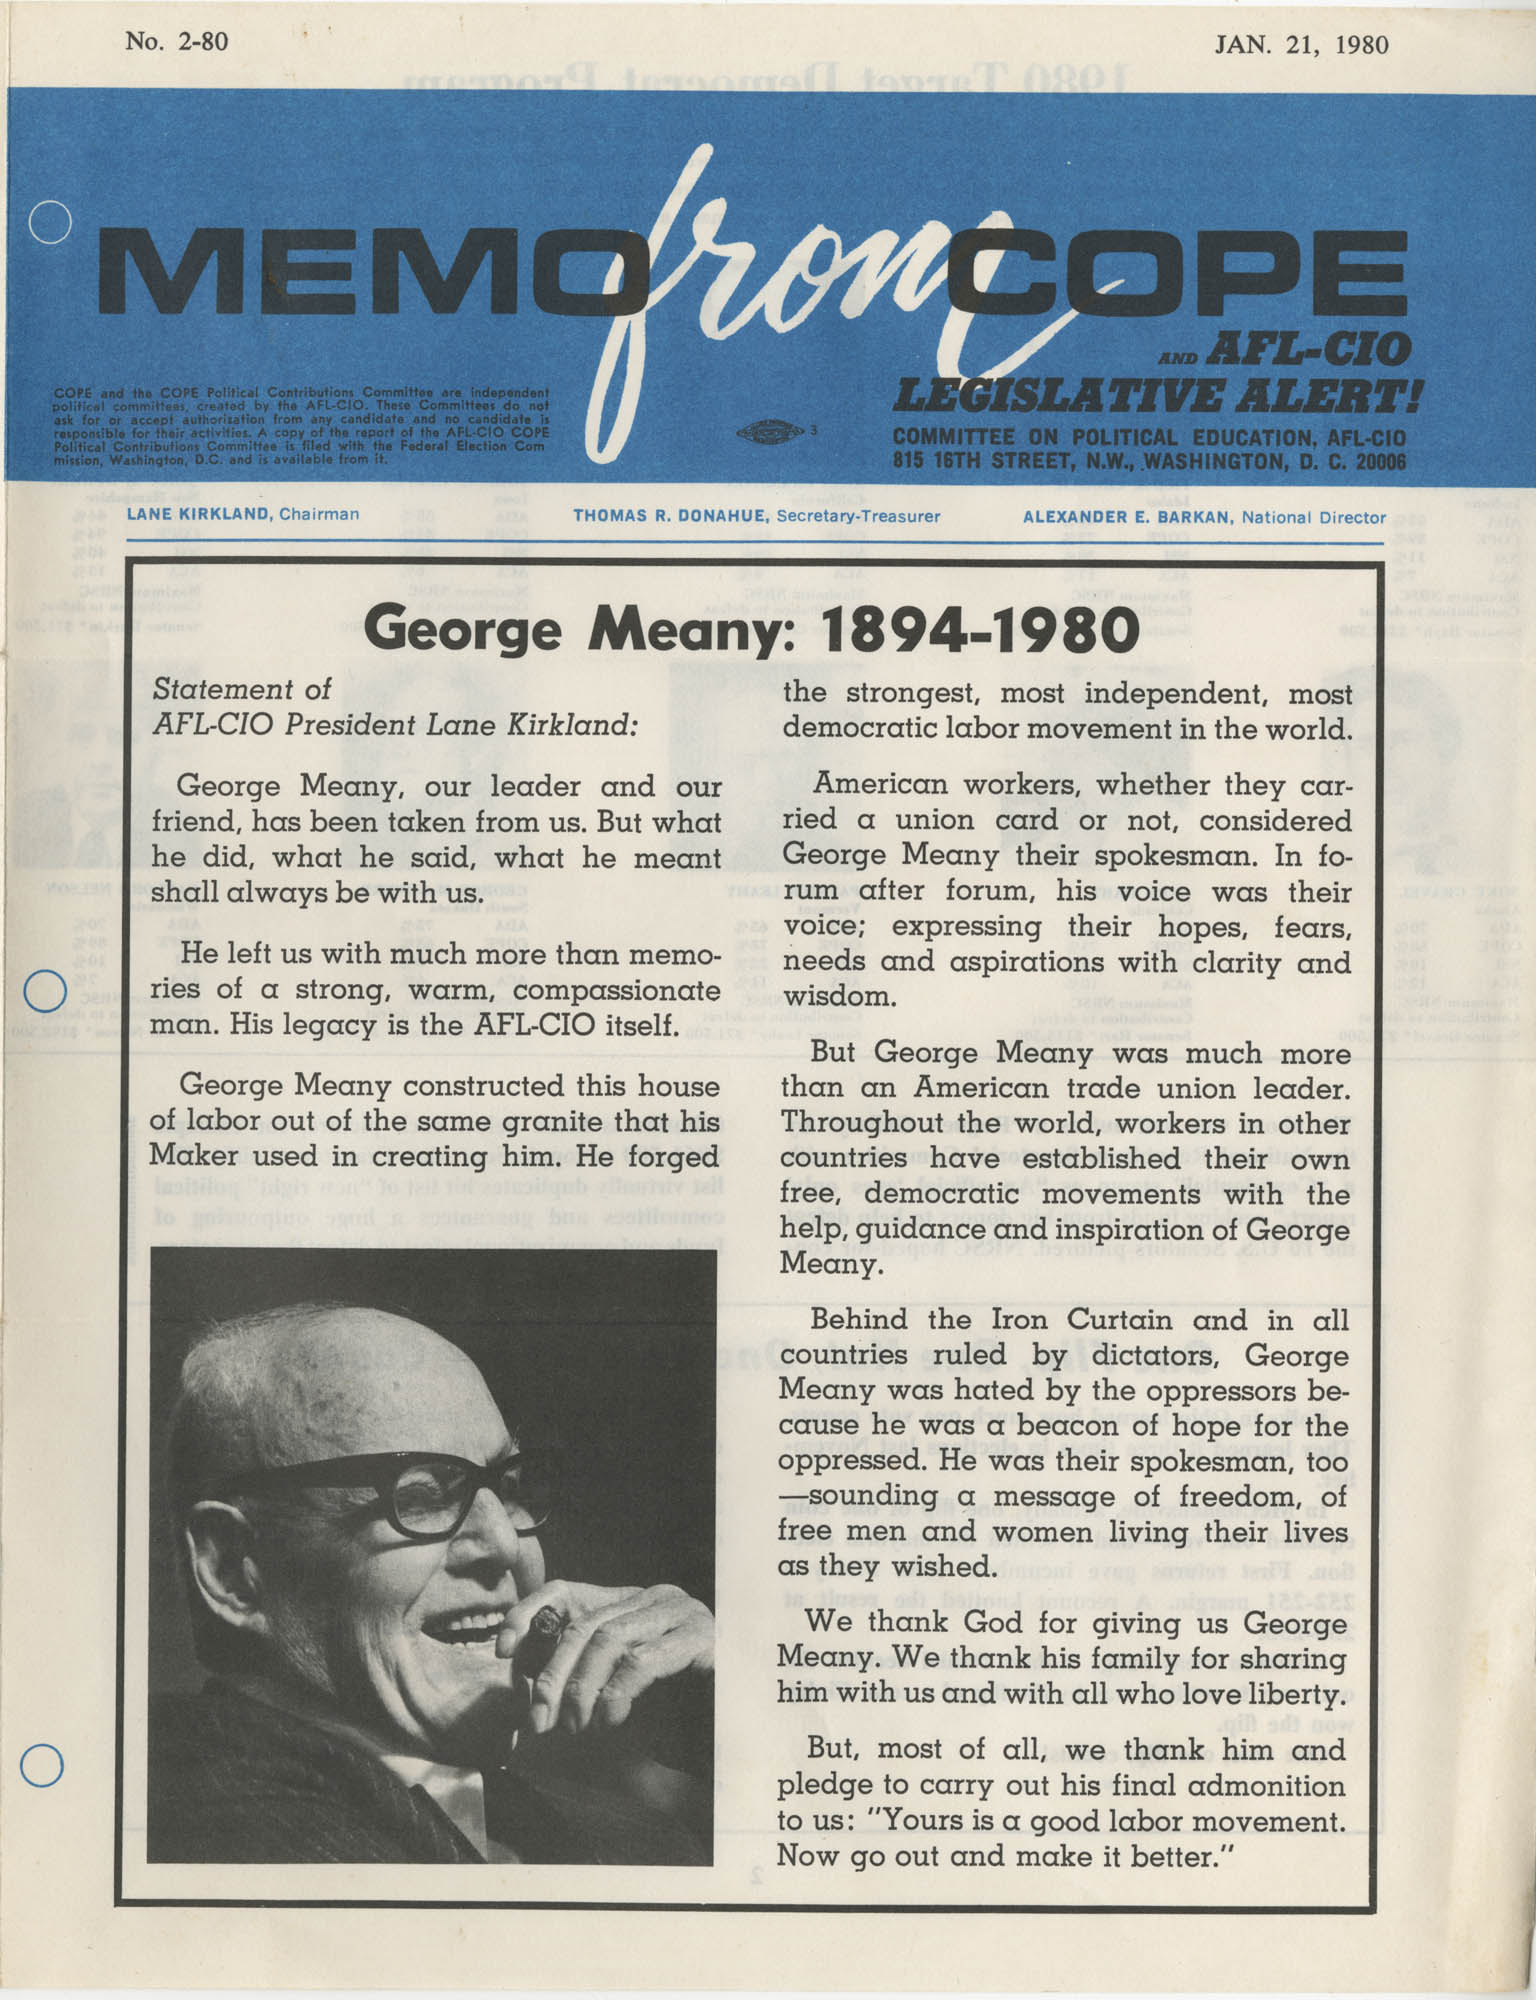 Memo From Cope, No. 2-80, January 21, 1980